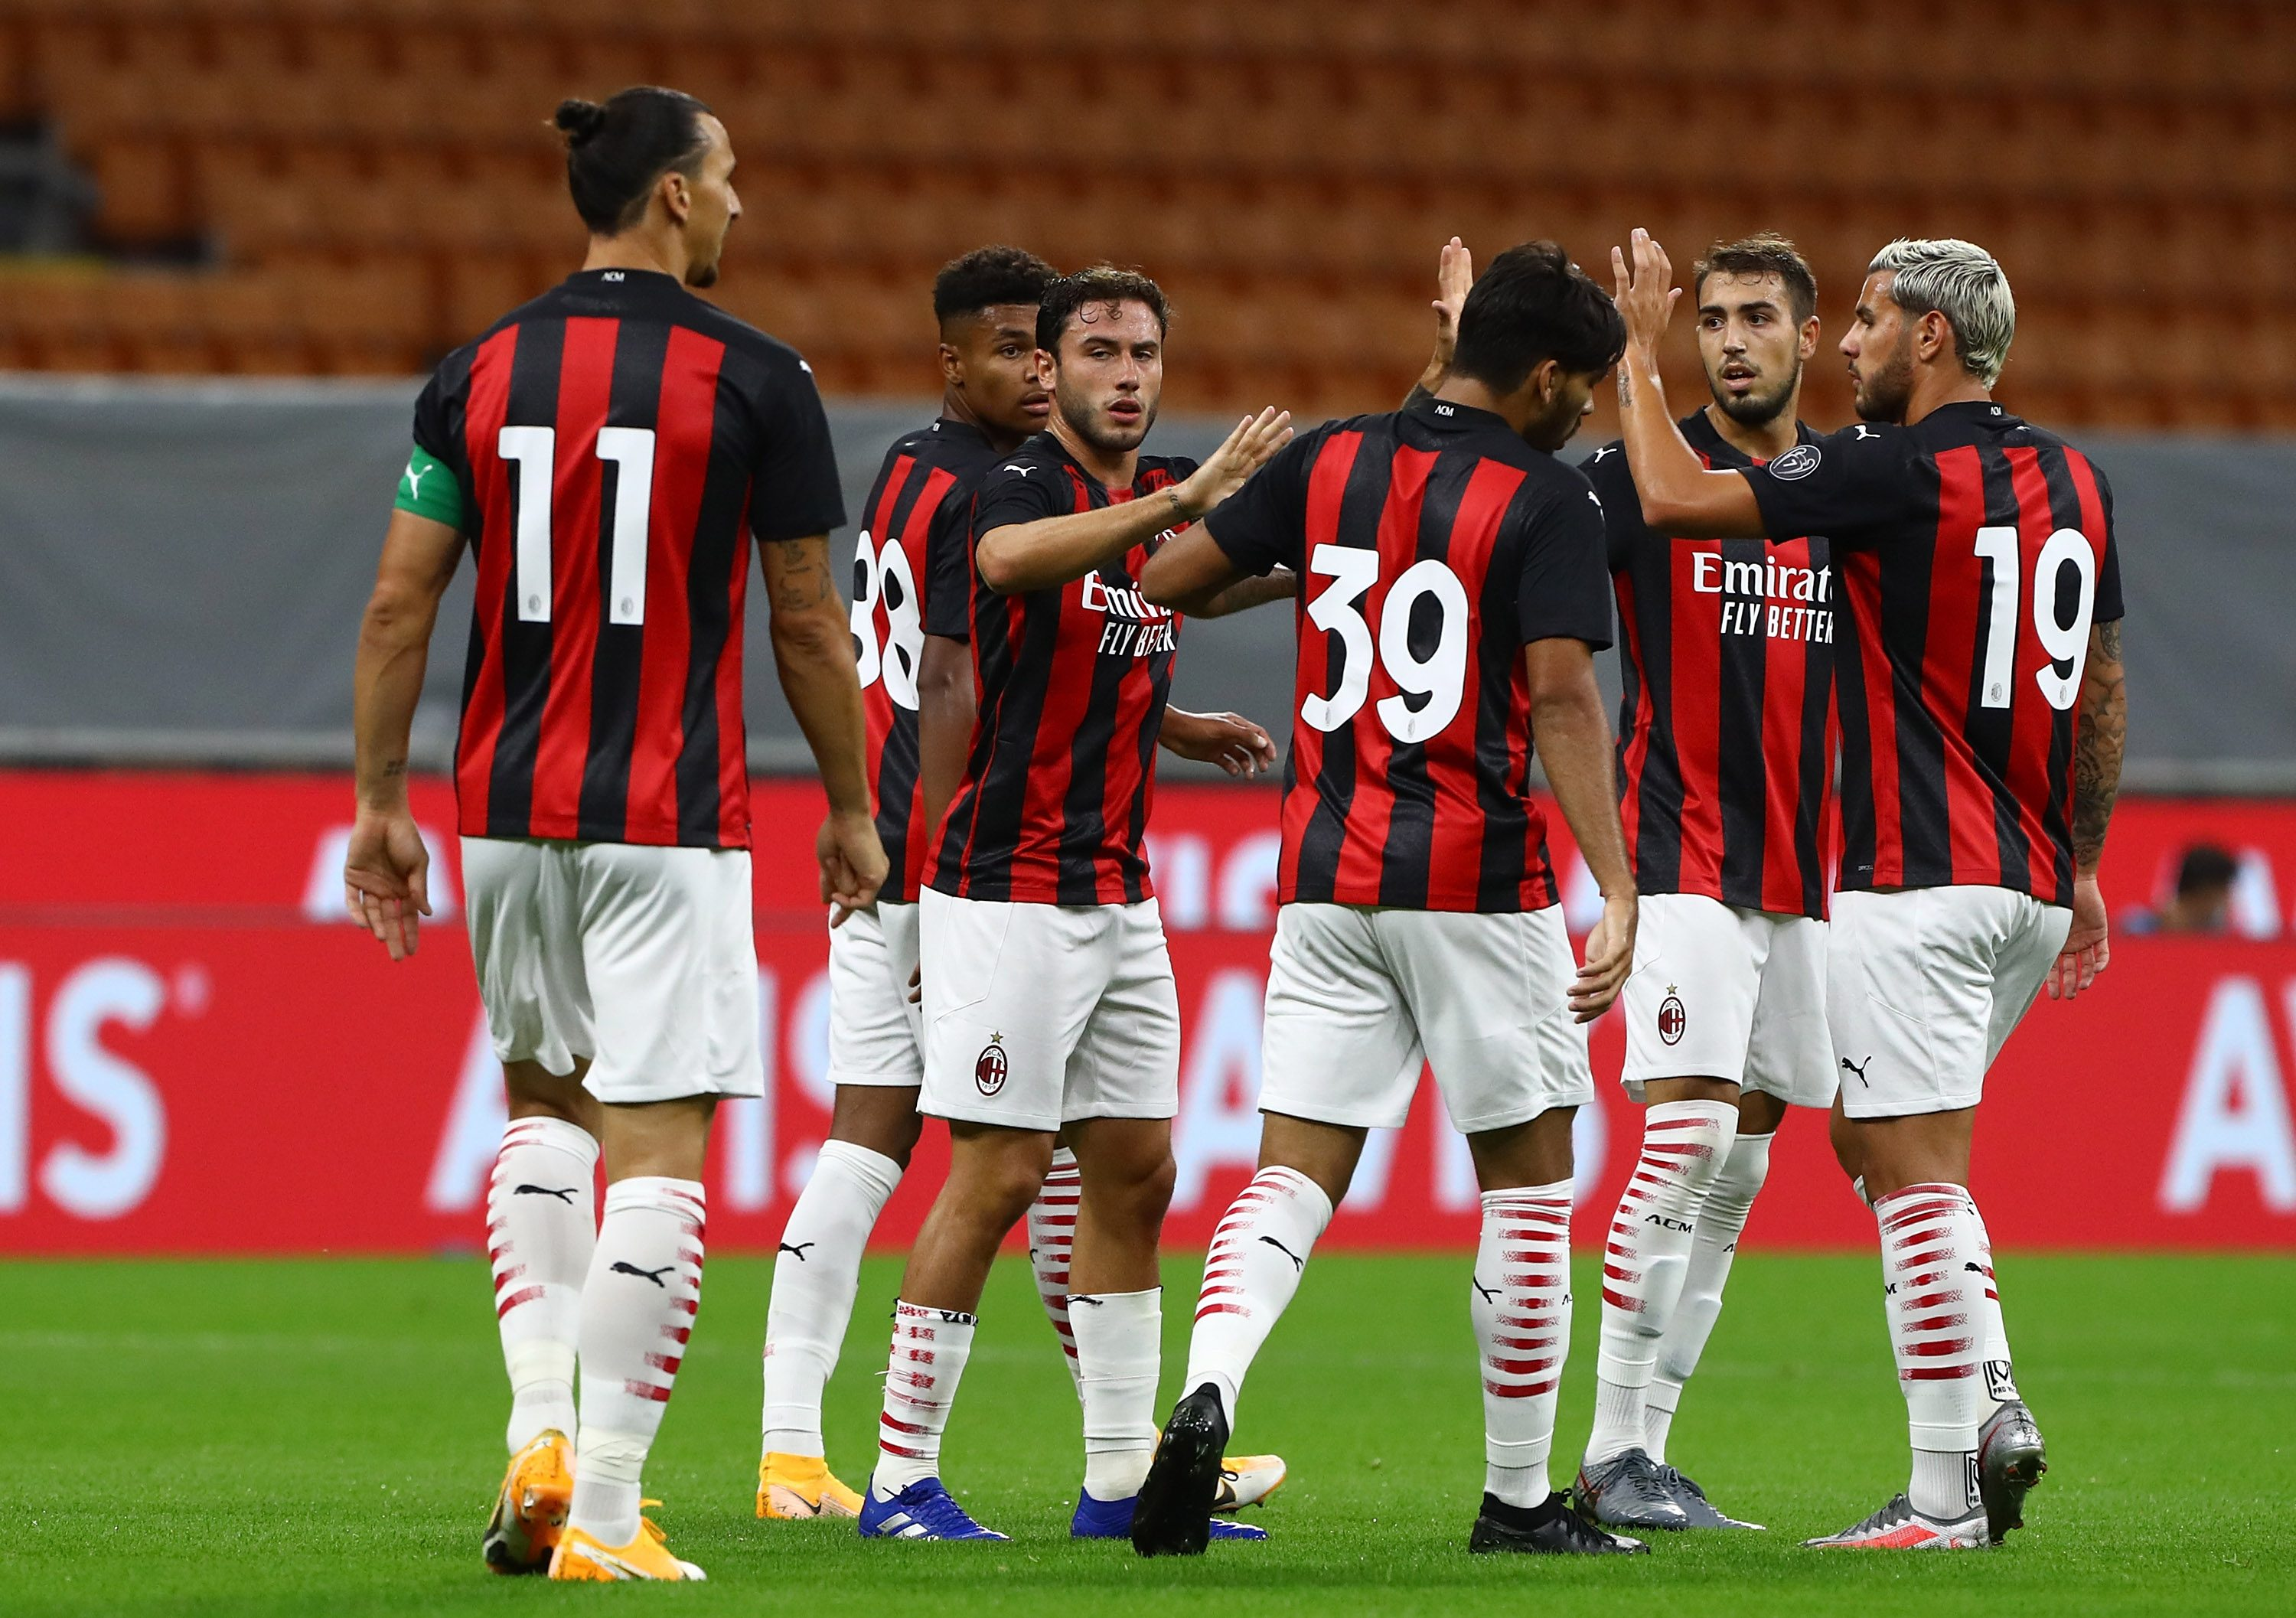 Milan vince in Europa League 2-0 sullo Shamrock Rovers